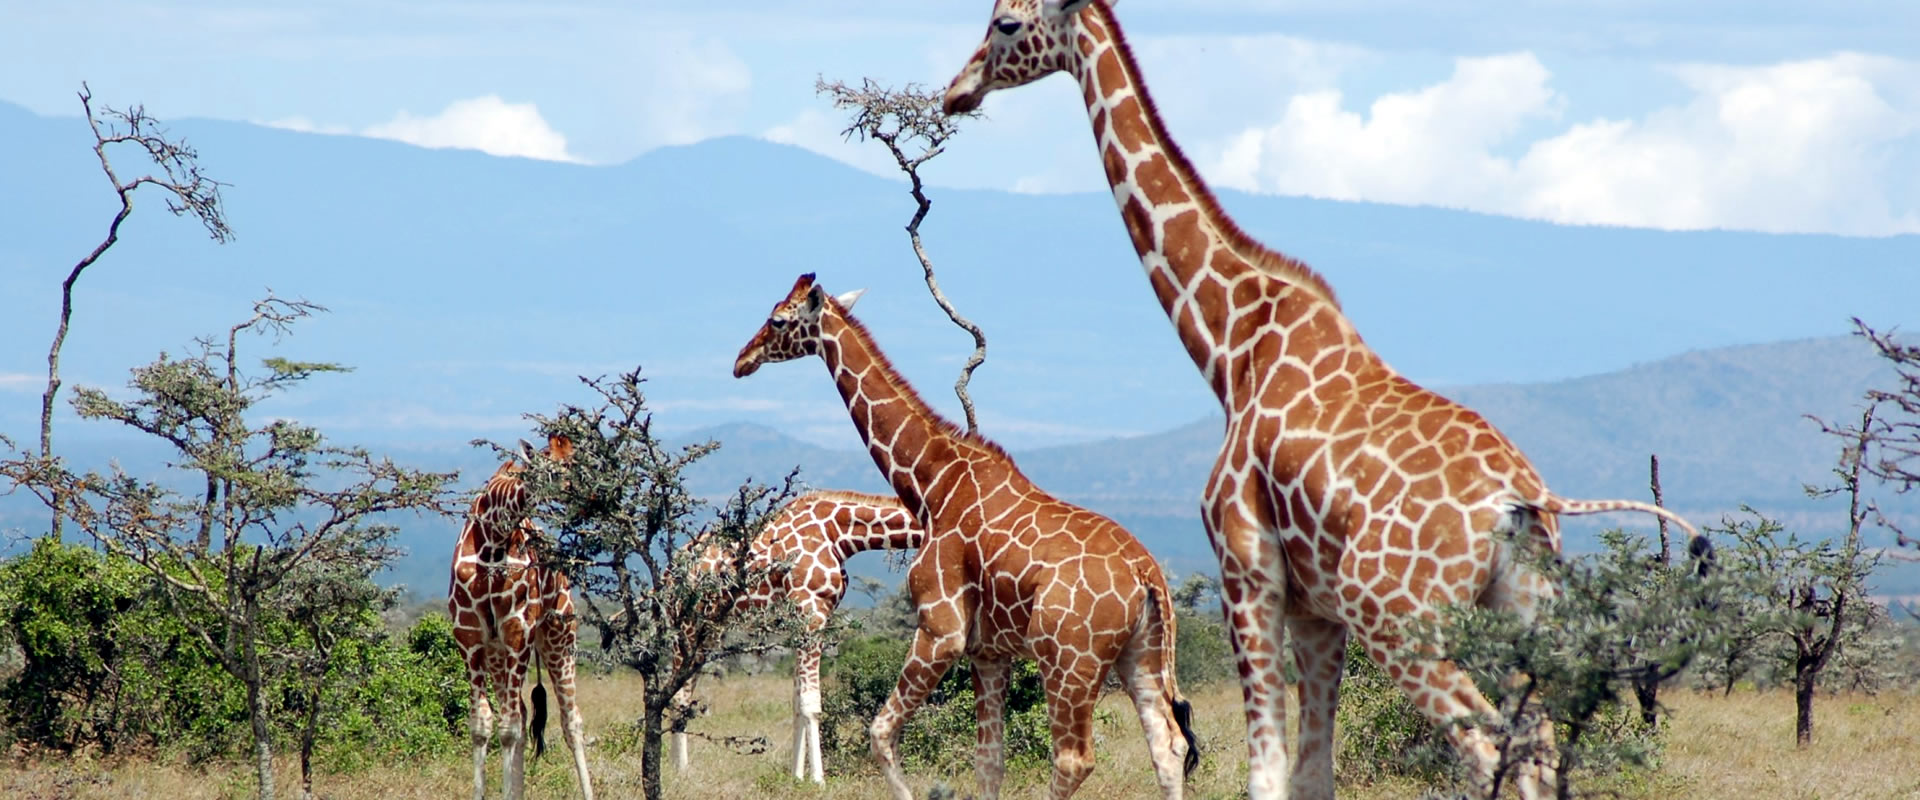 7 nights samburu, nanyuki, nakuru, mara